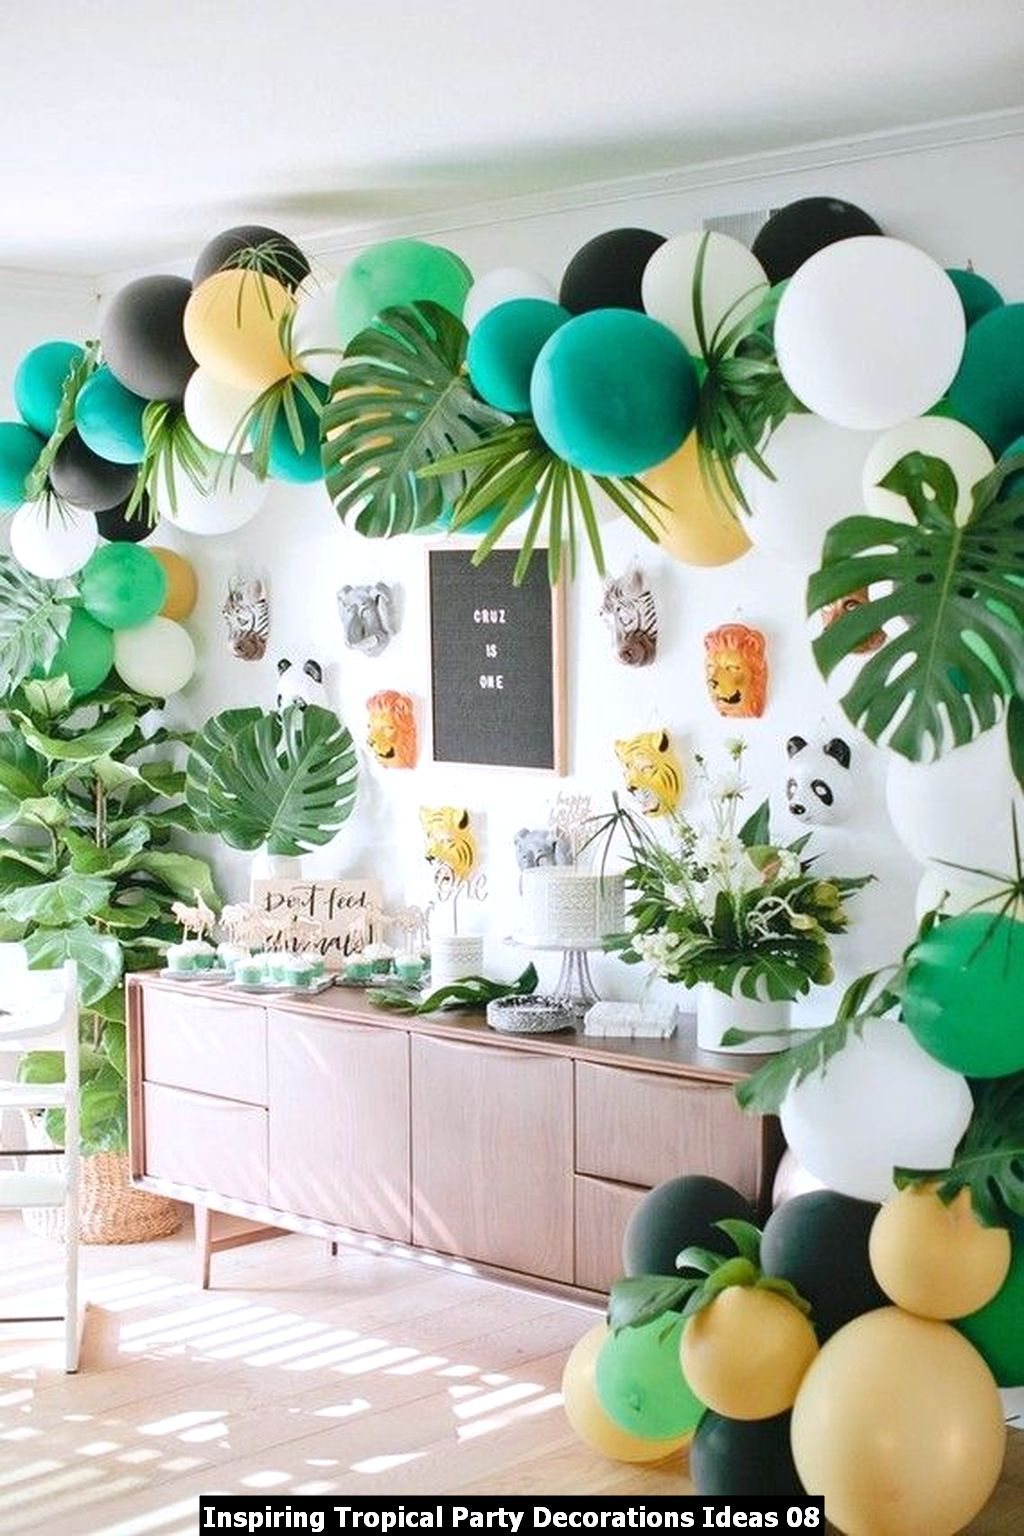 Inspiring Tropical Party Decorations Ideas 08